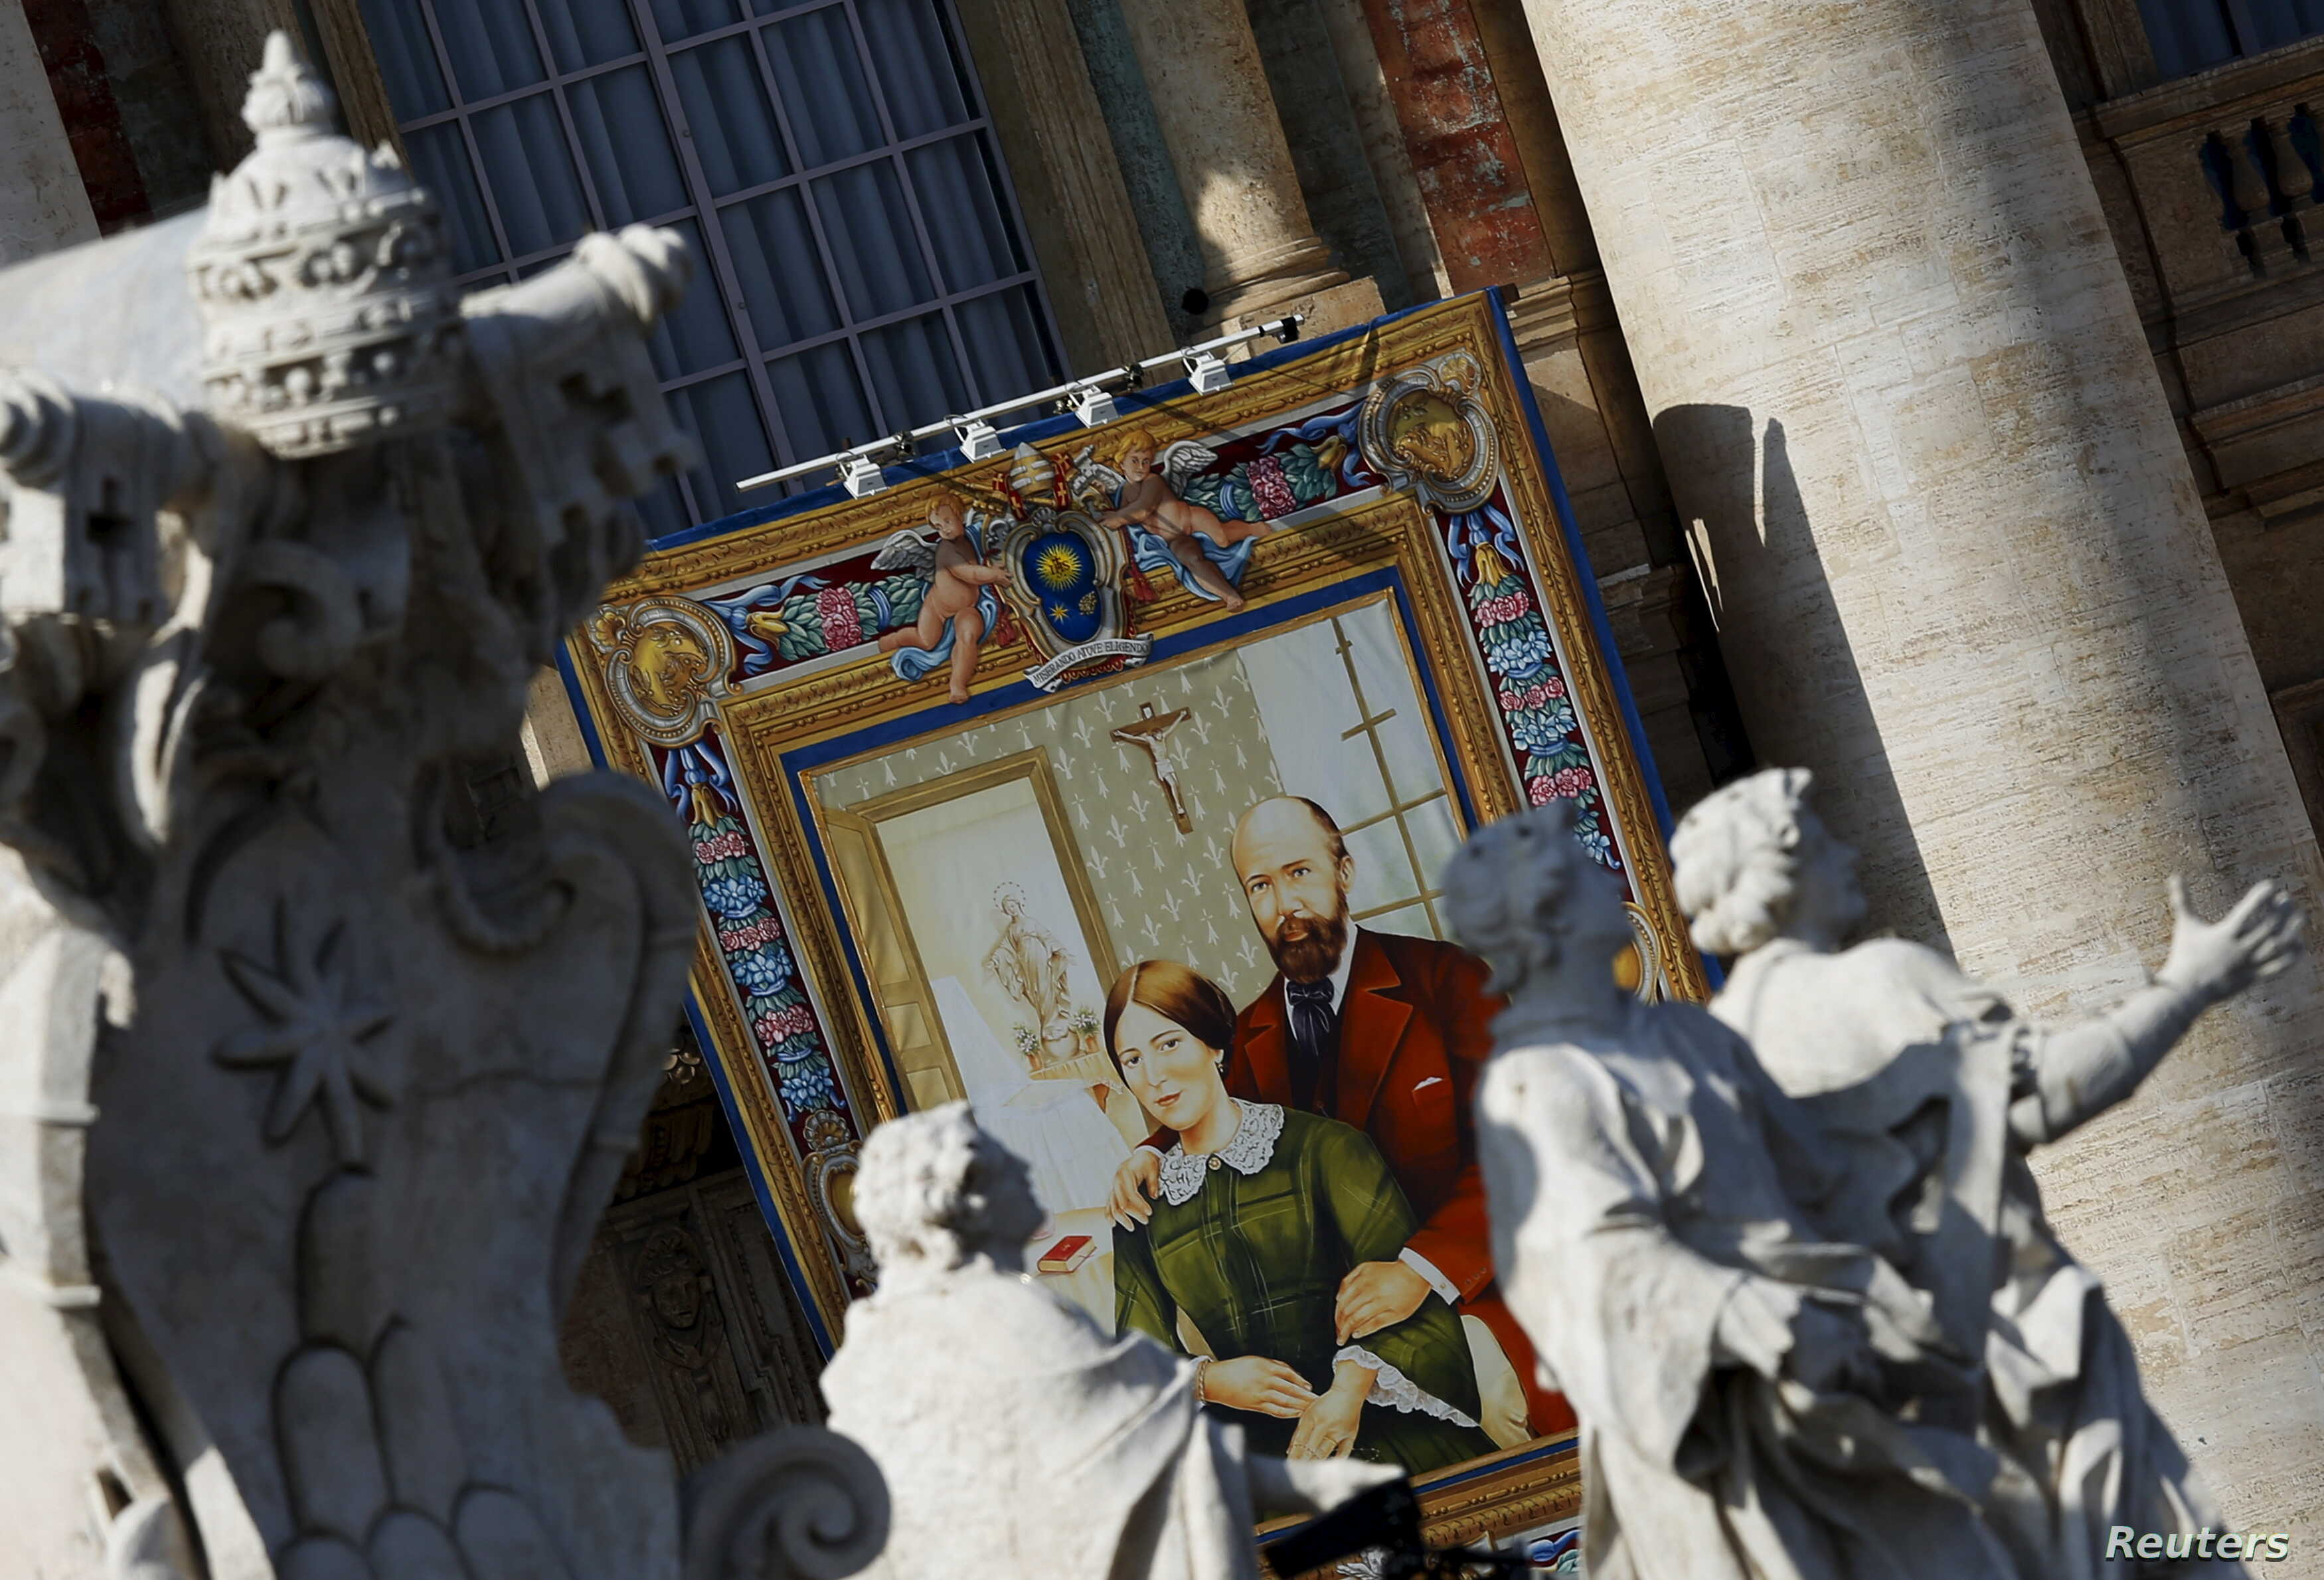 A tapestry showing Louis and Zelie Martin, parents of St. Therese of Lisieux, hangs from a balcony as Pope Francis leads the mass for their canonization in Saint Peter's Square at the Vatican, Oct. 18, 2015.